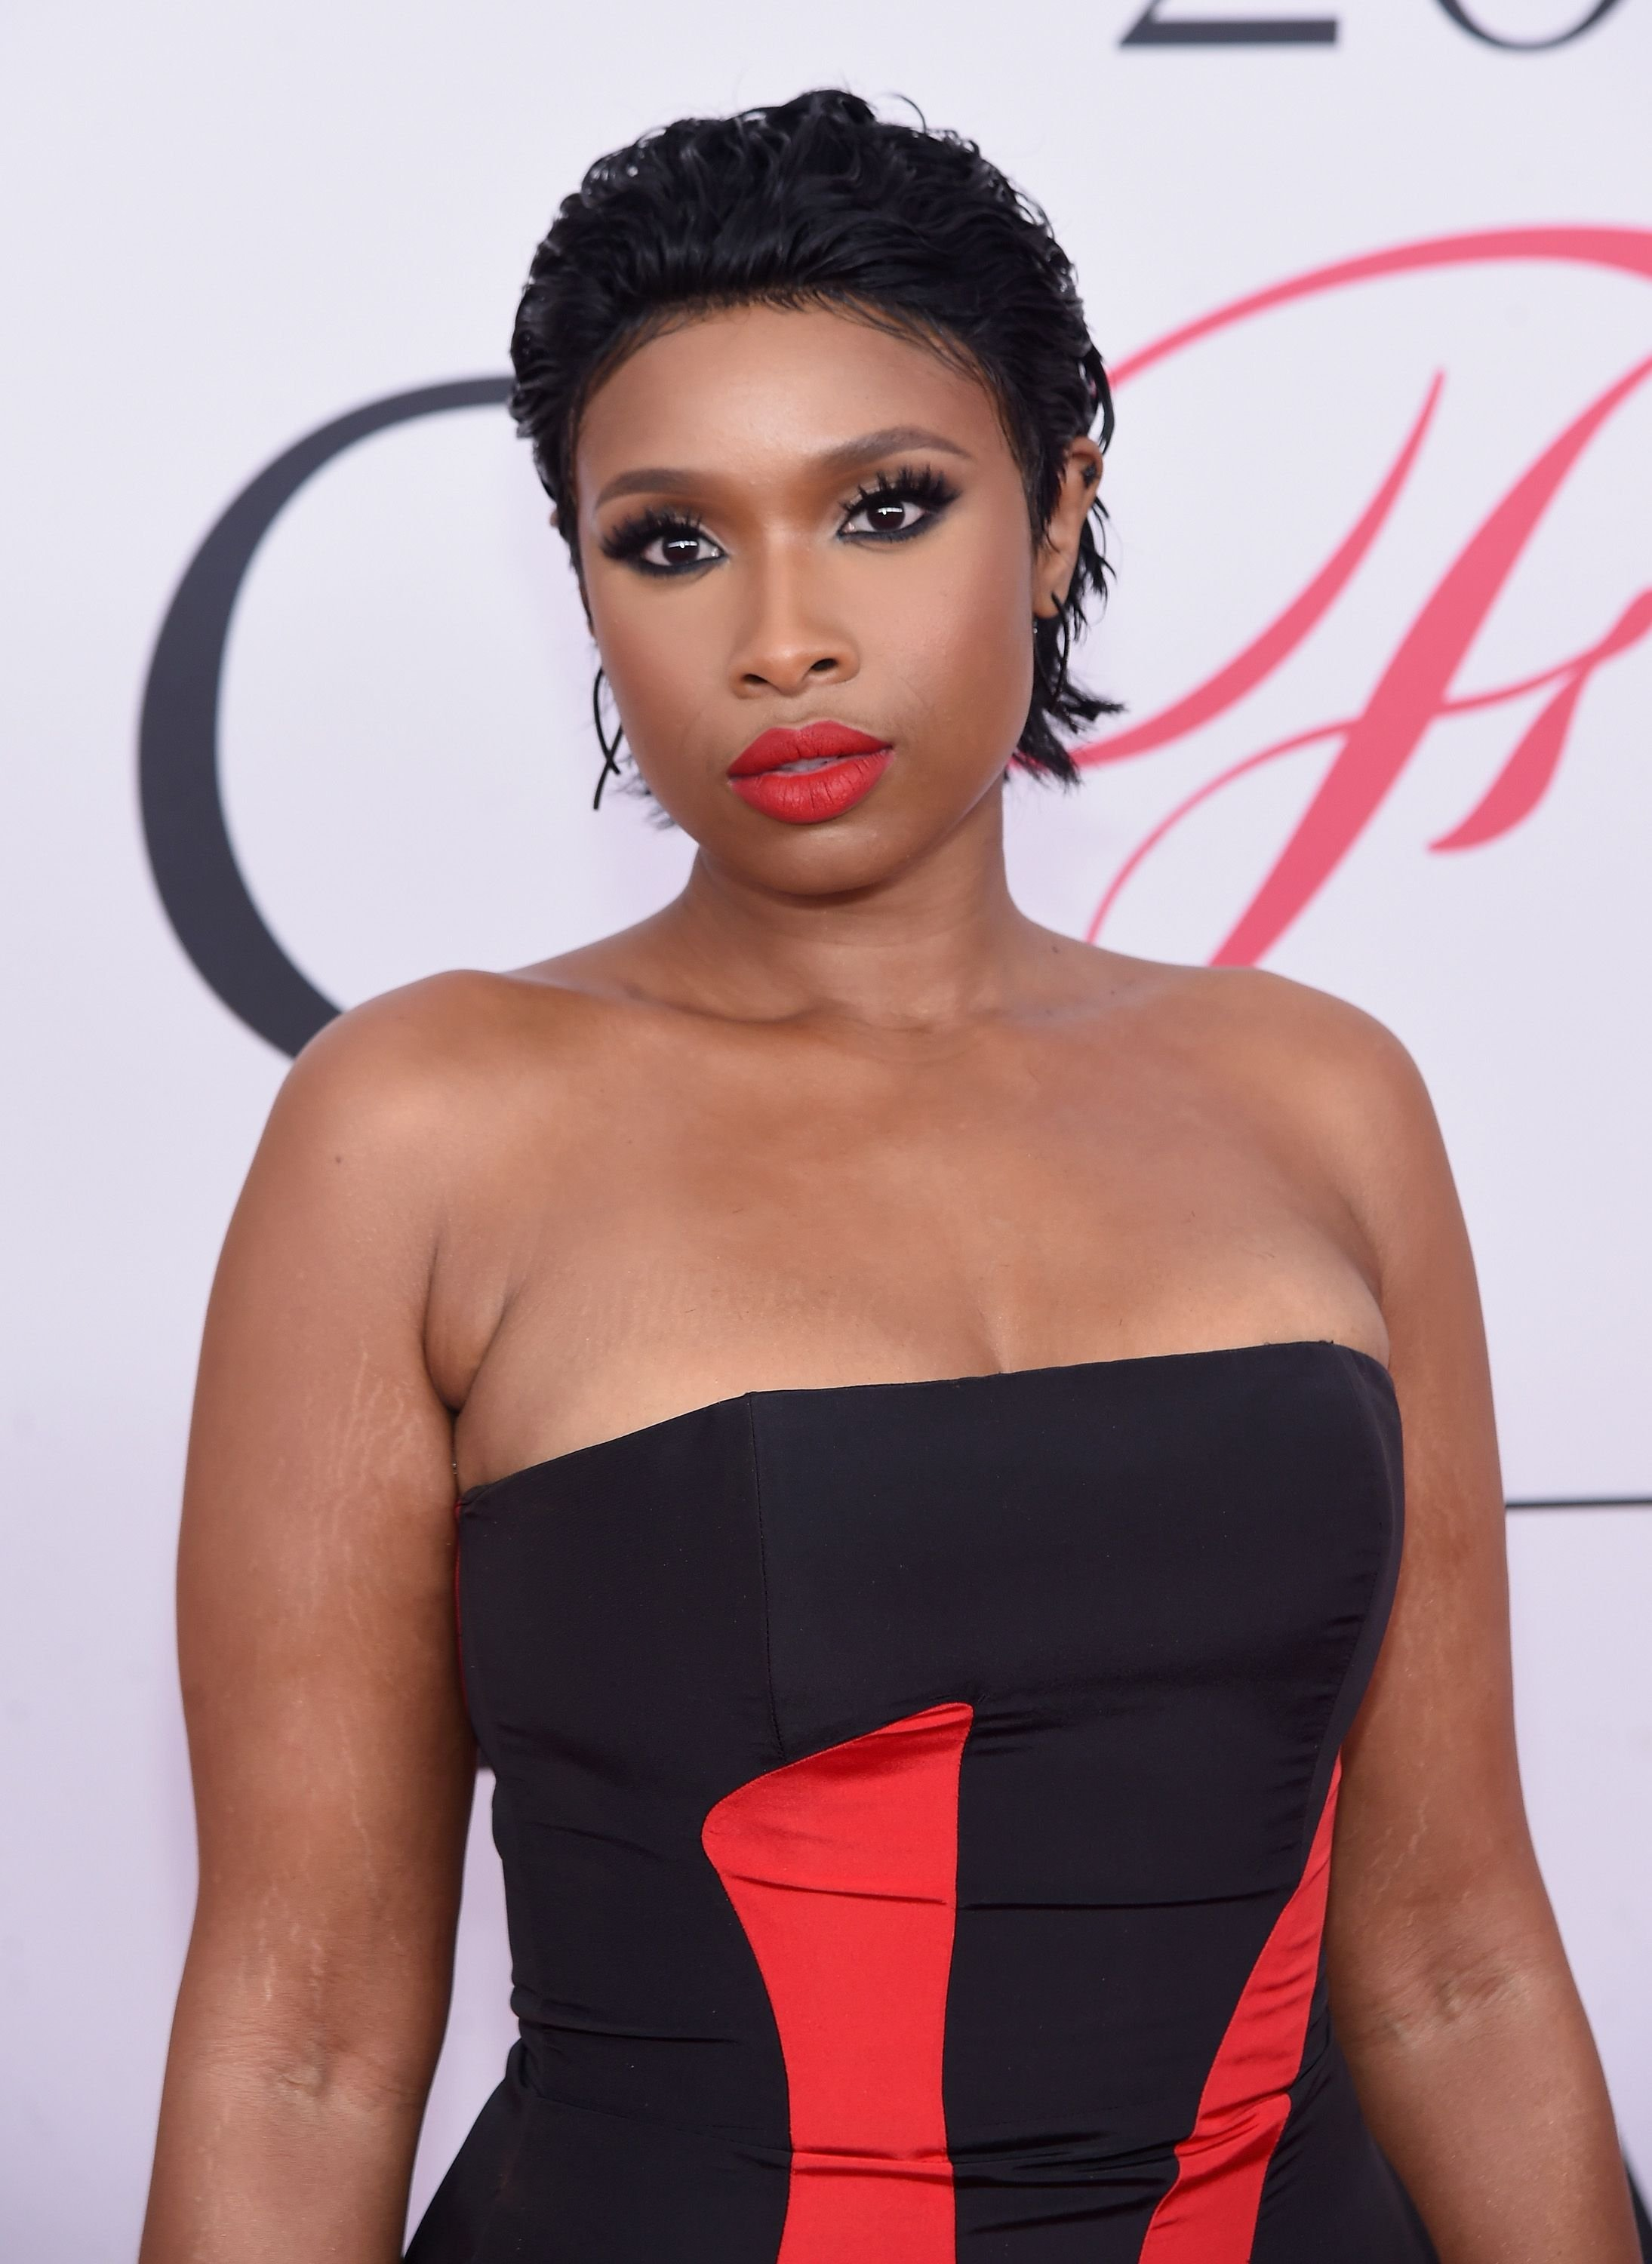 Jennifer Hudson at the 2016 CFDA Fashion Awards at the Hammerstein Ballroom on June 6, 2016 in New York City | Photo: Getty Images